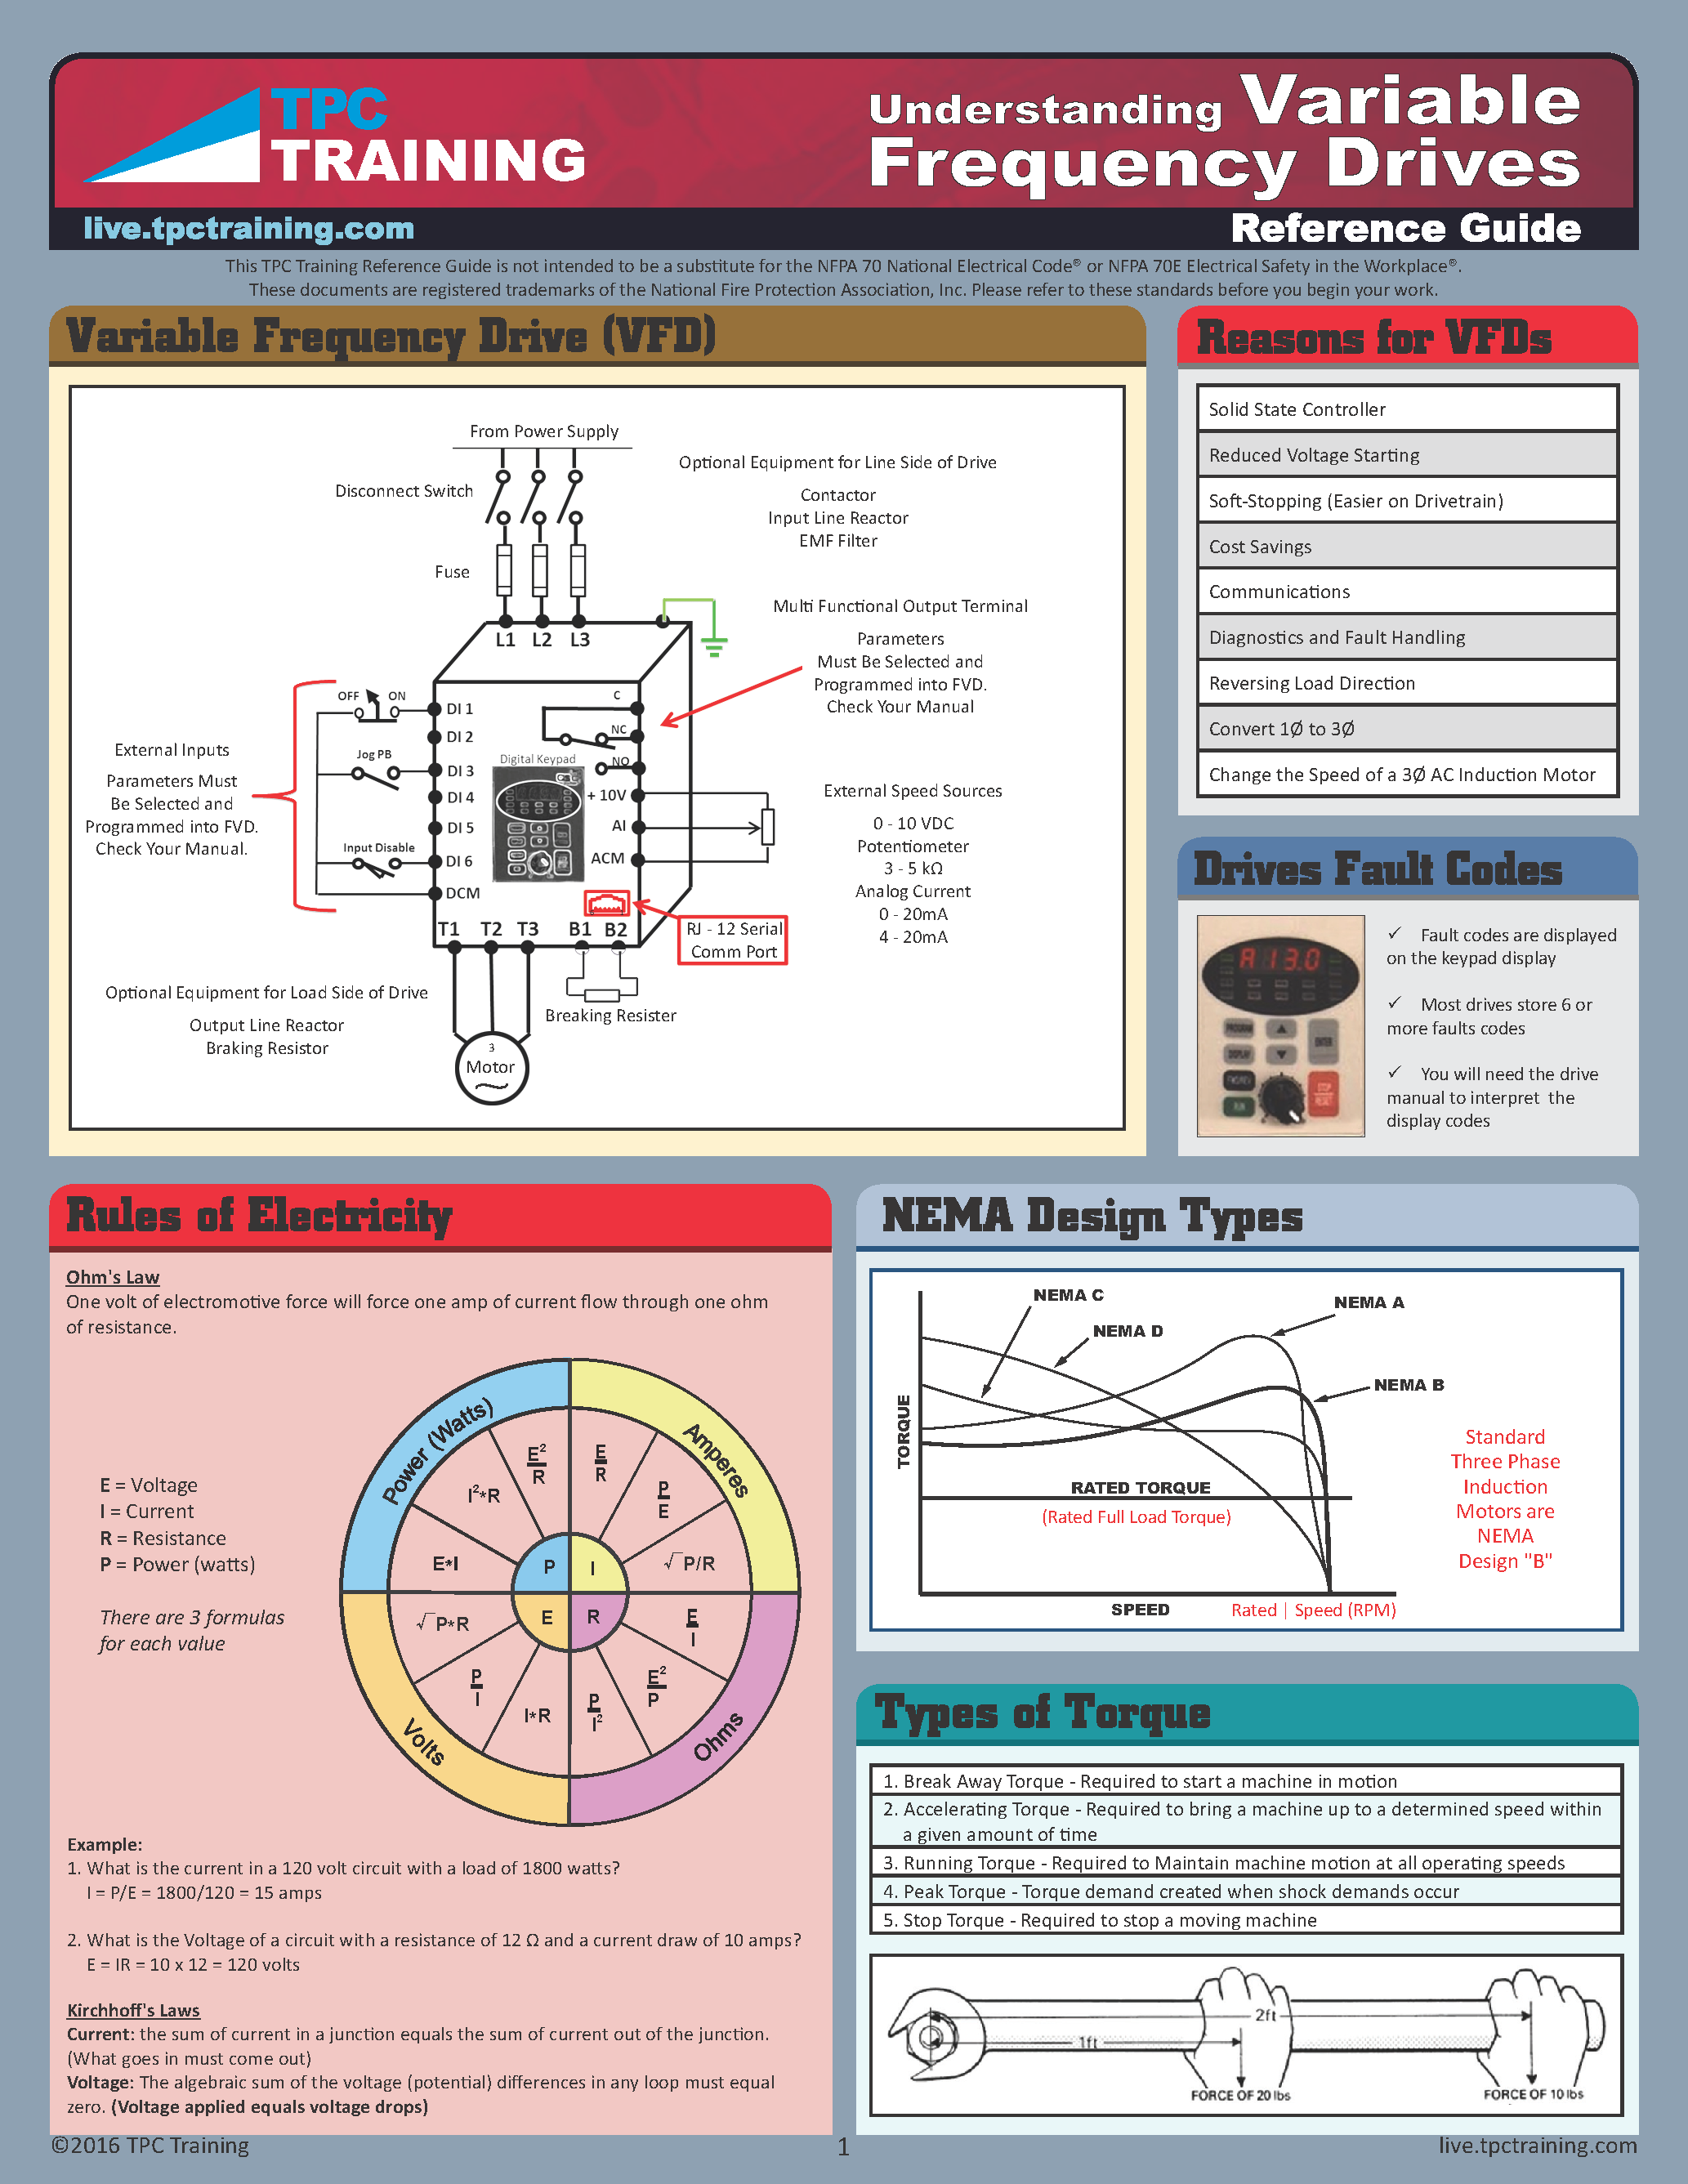 Understanding Variable Frequency Drives Reference Guide